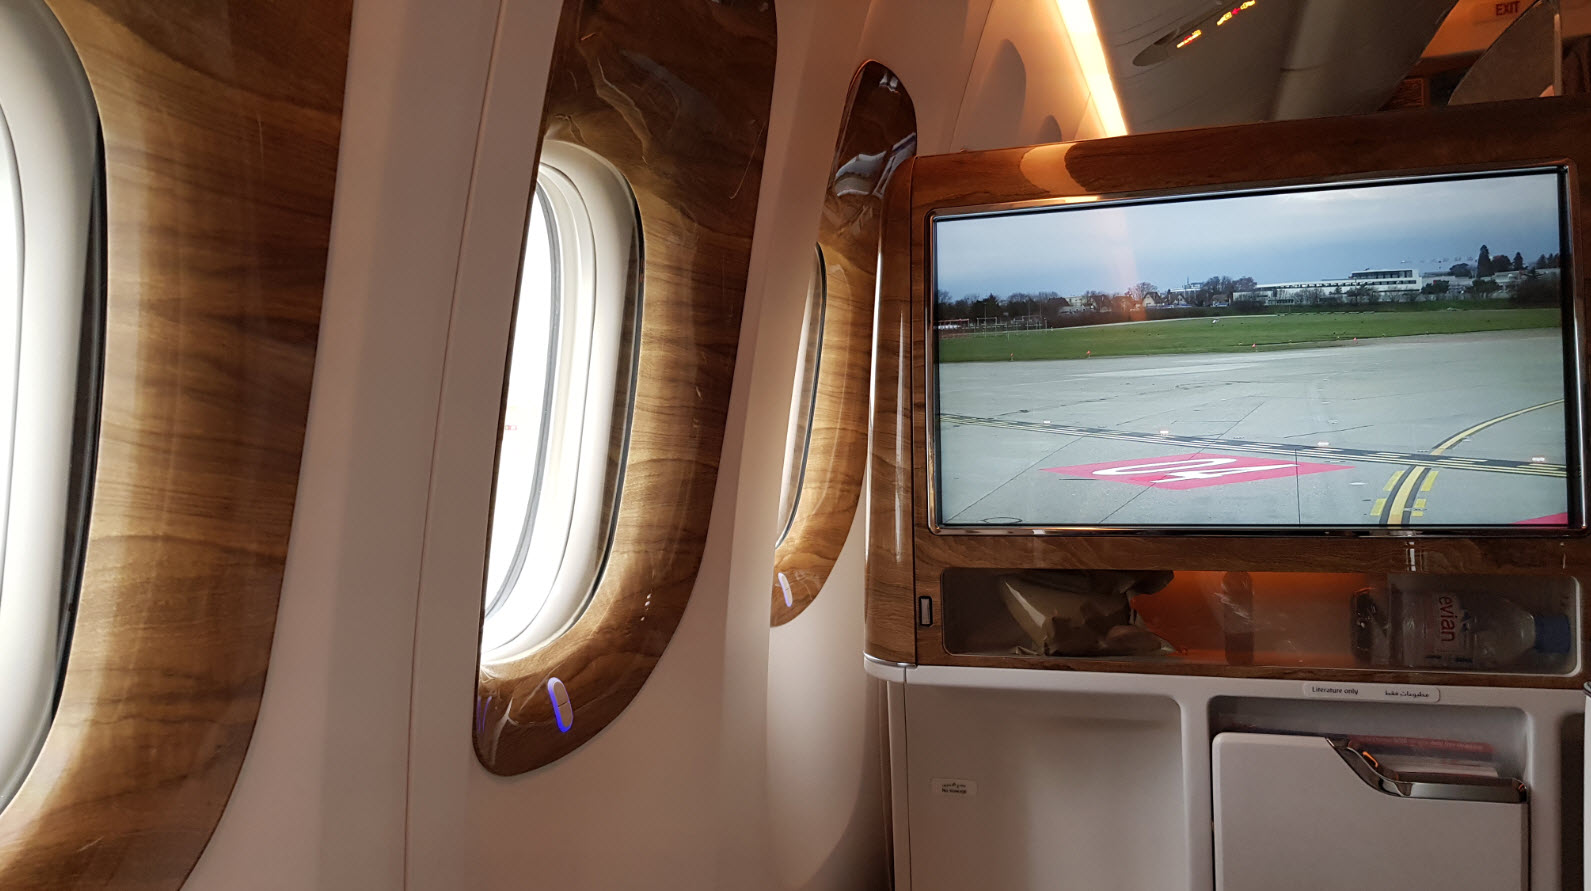 Vol Classe Affaires Emirates